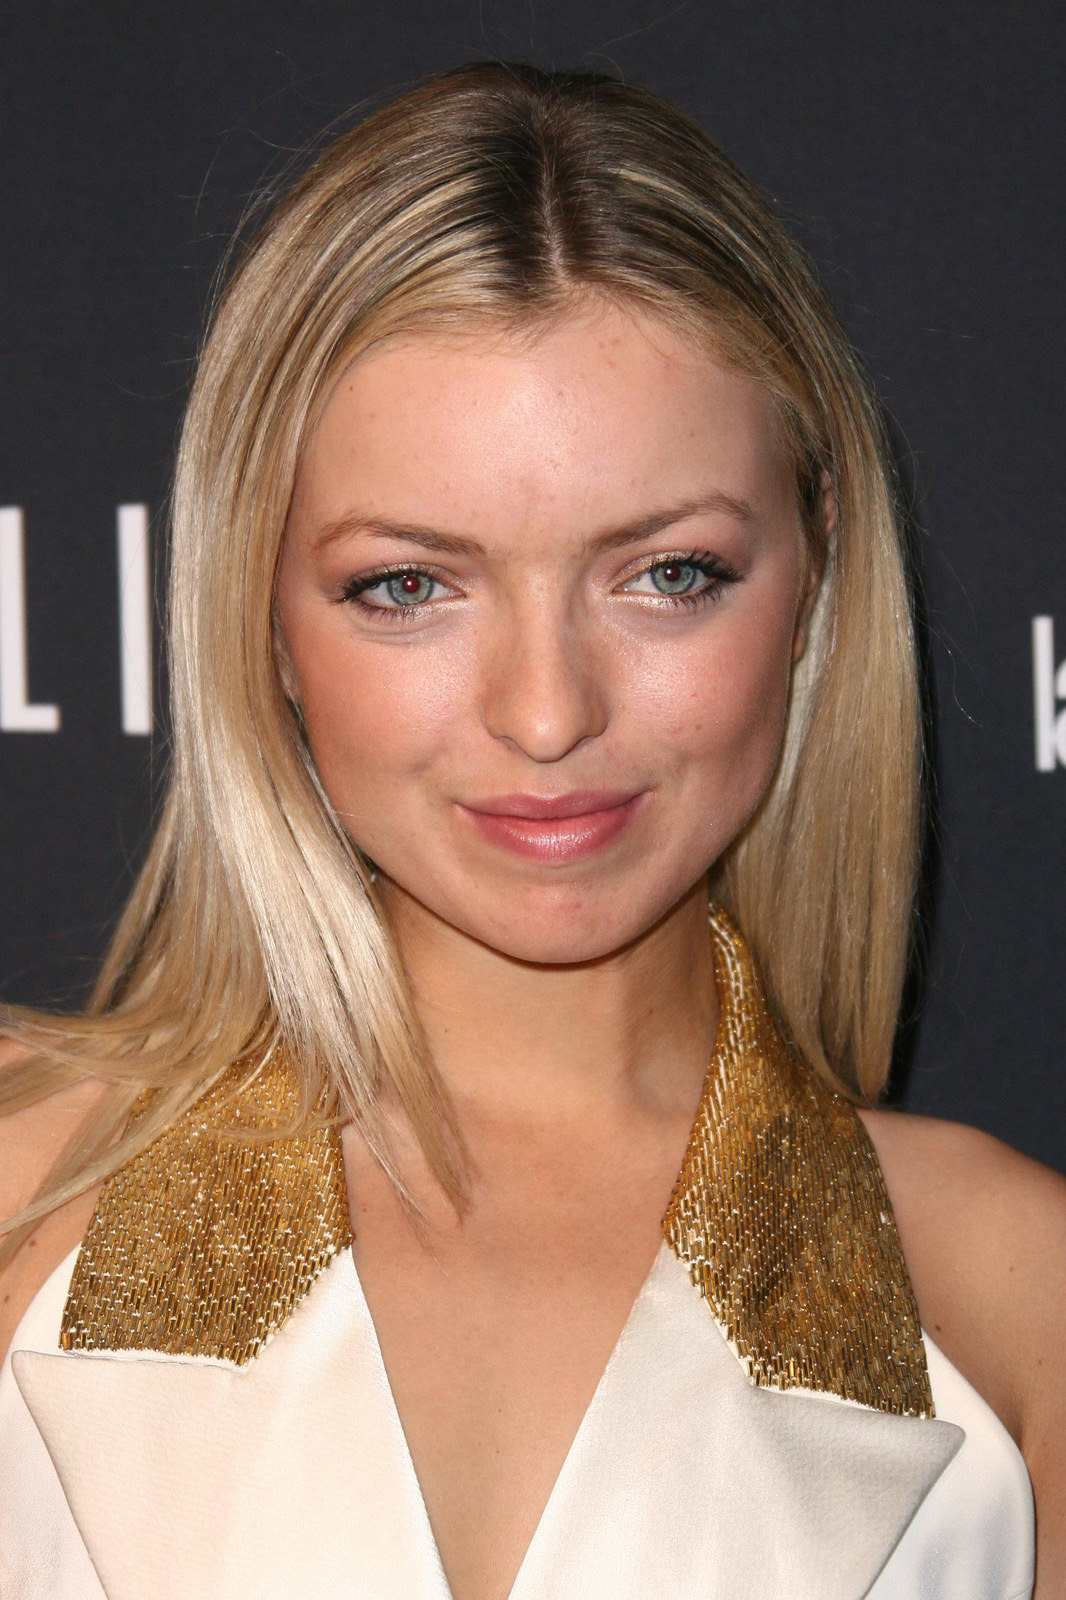 Francesca Eastwood nudes (28 pictures) Hacked, Twitter, butt